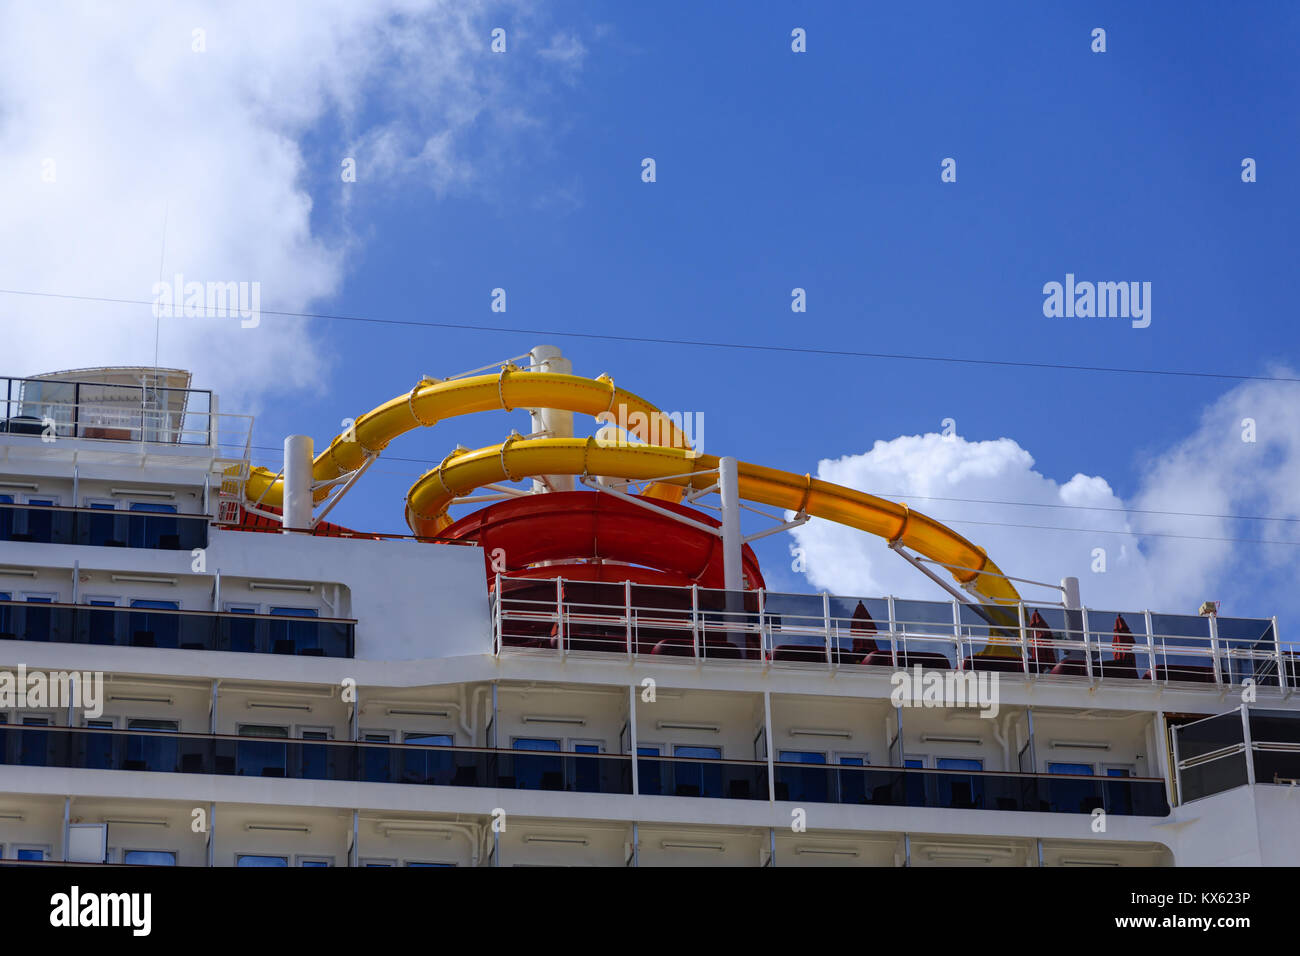 Yellow and Red Slide on a Cruise Ship - Stock Image